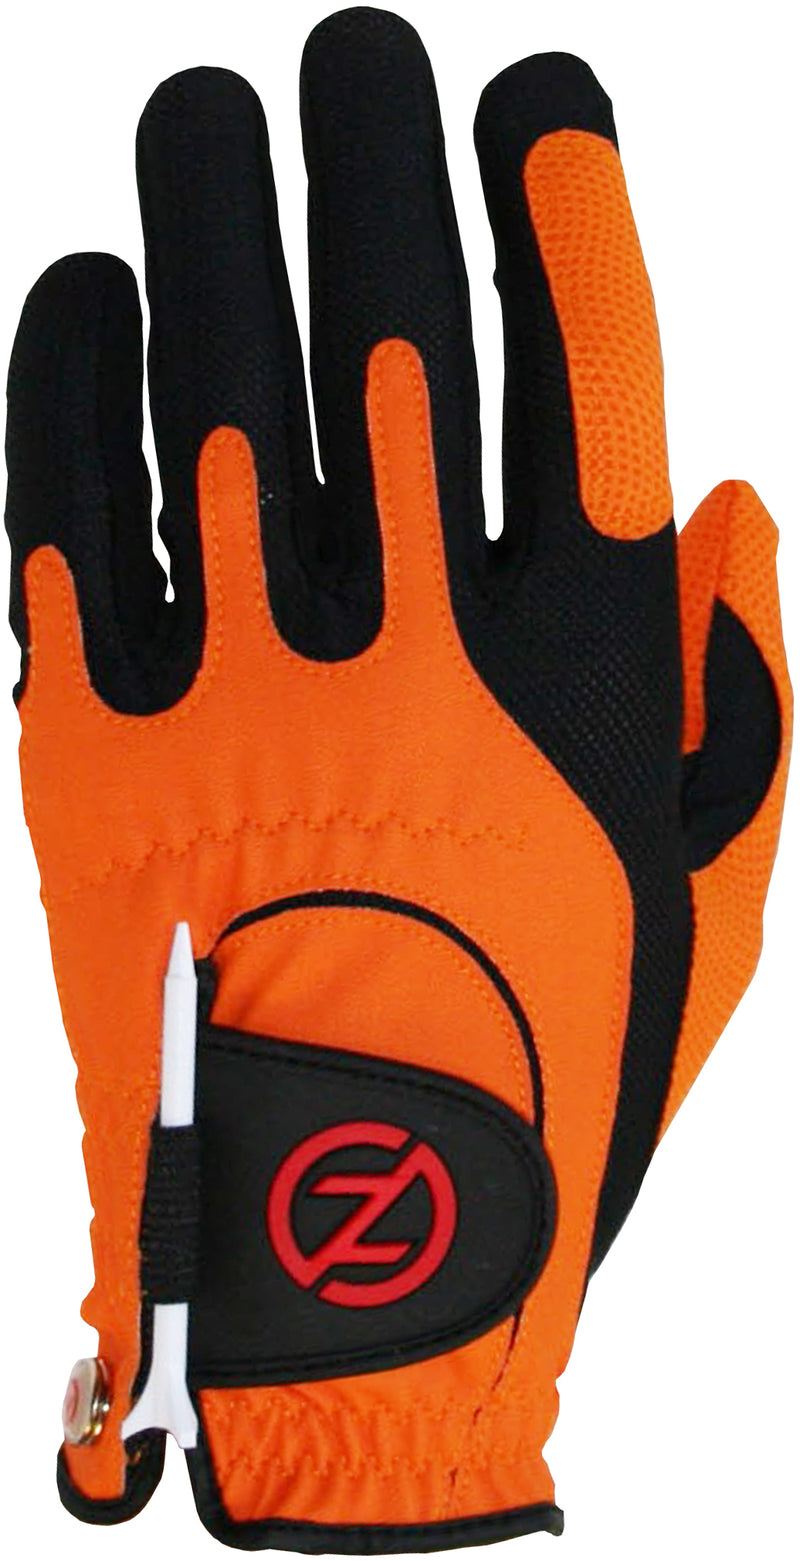 Zero Friction - Orange - Apparelly Gloves